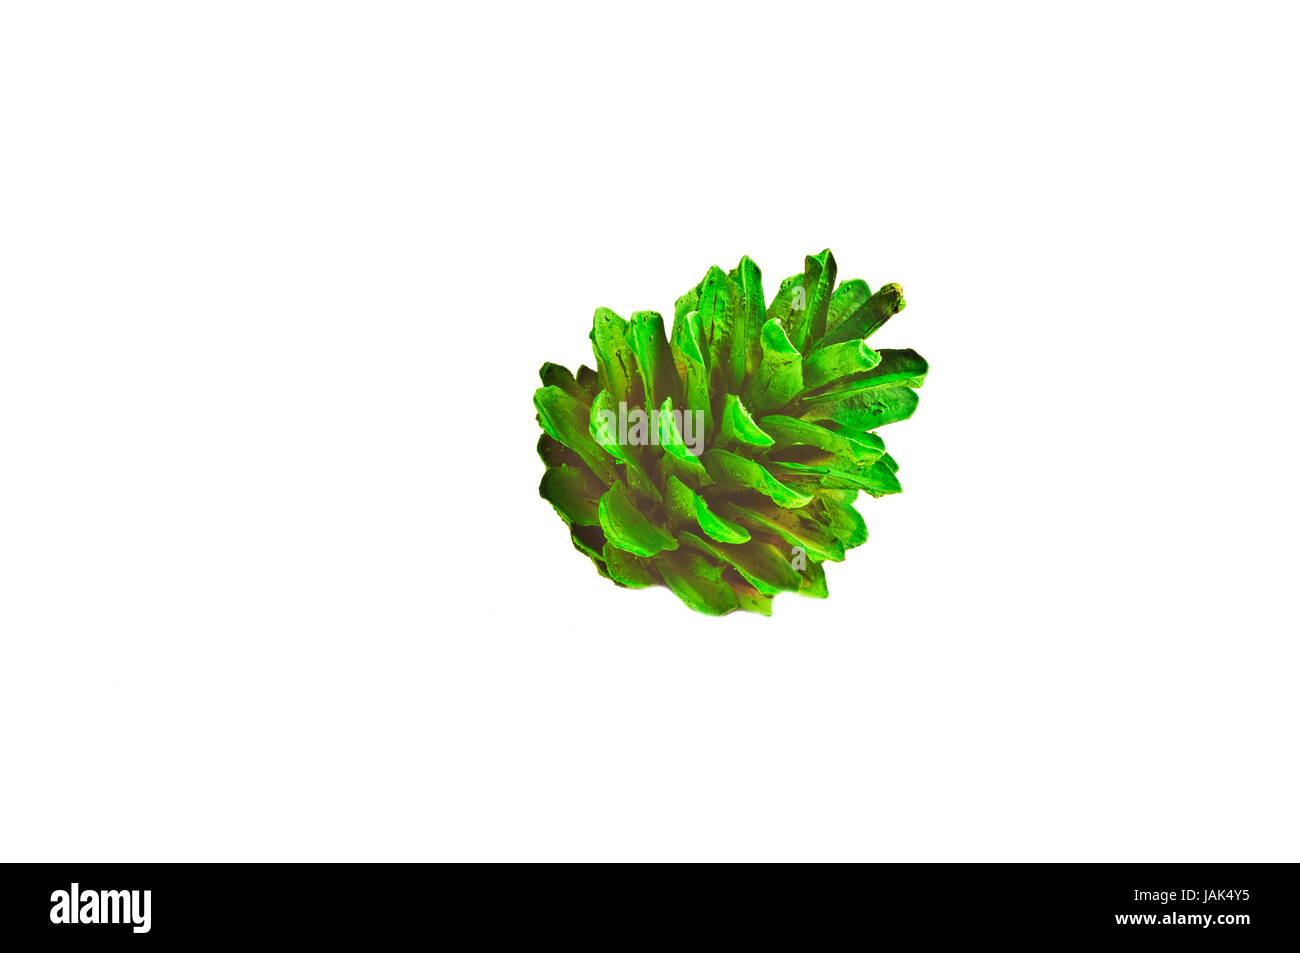 Kiefernzapfen Symbolik Tannenzapfen Cut Out Stock Images Pictures Alamy